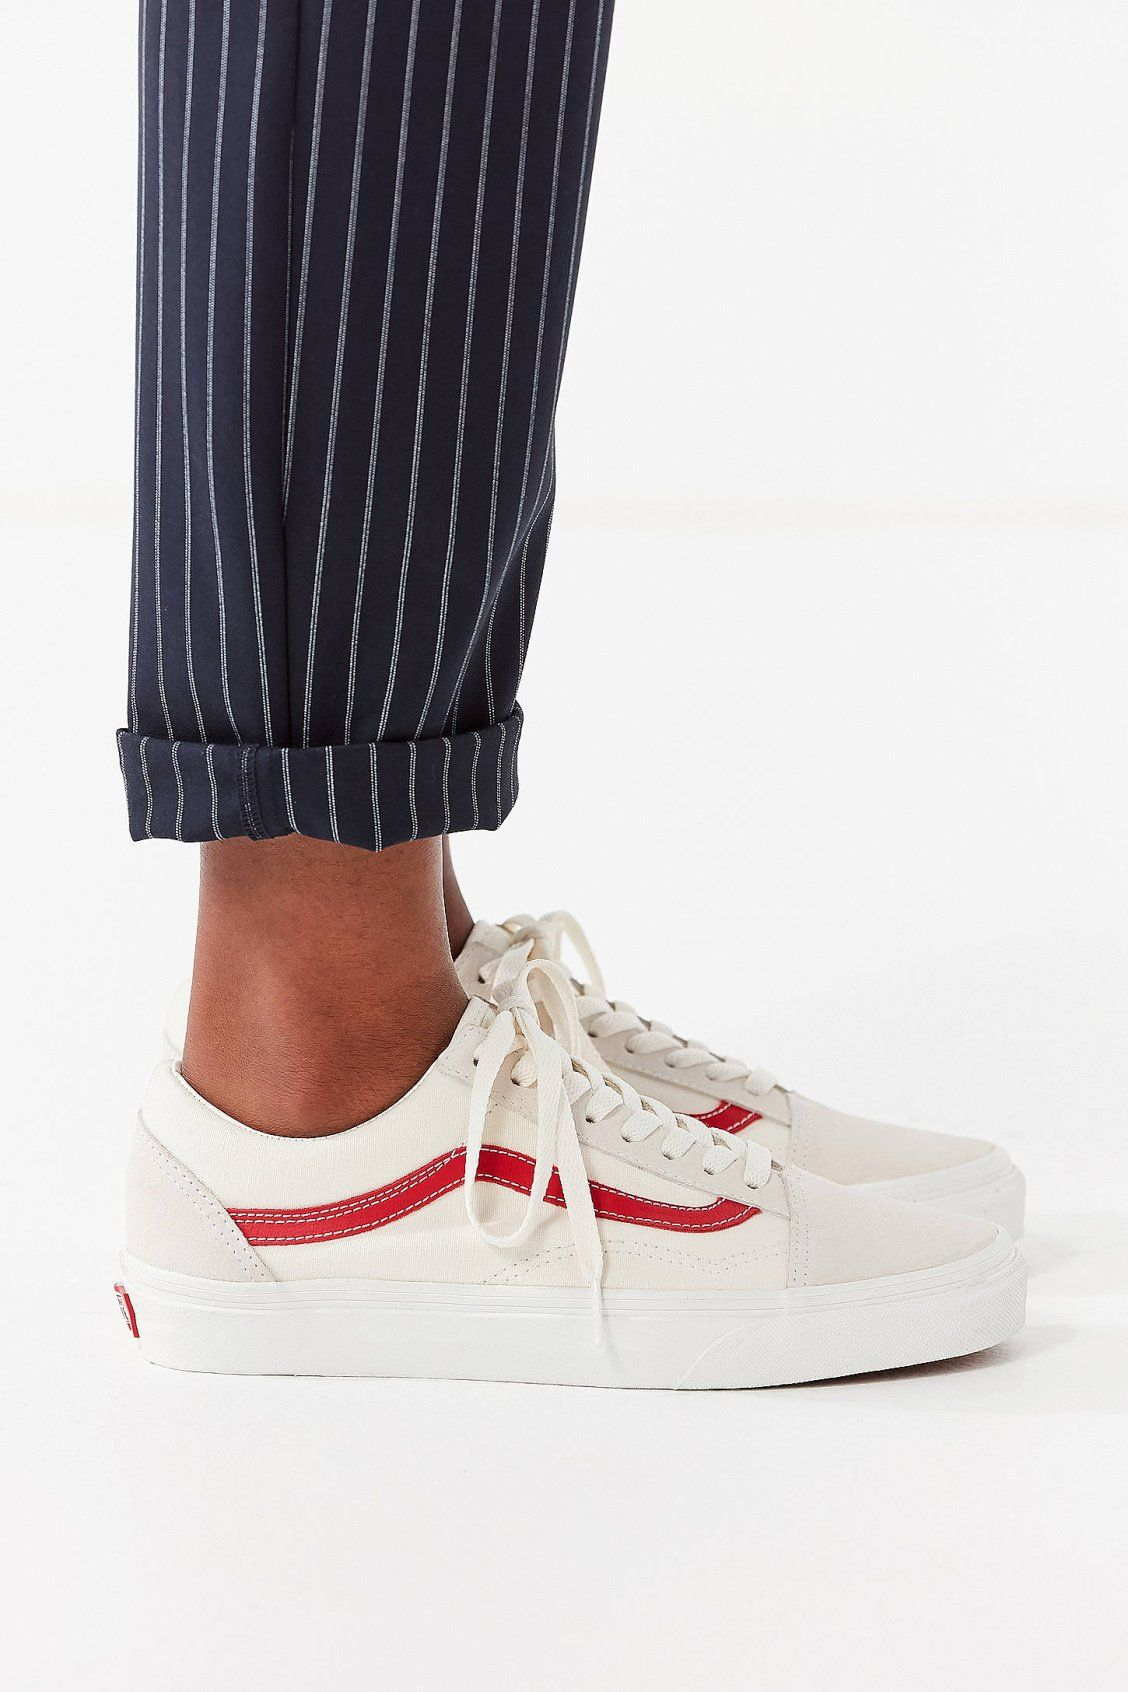 Vans Old Skool Sneaker | Fashion, Urban fashion, Trendy fashion